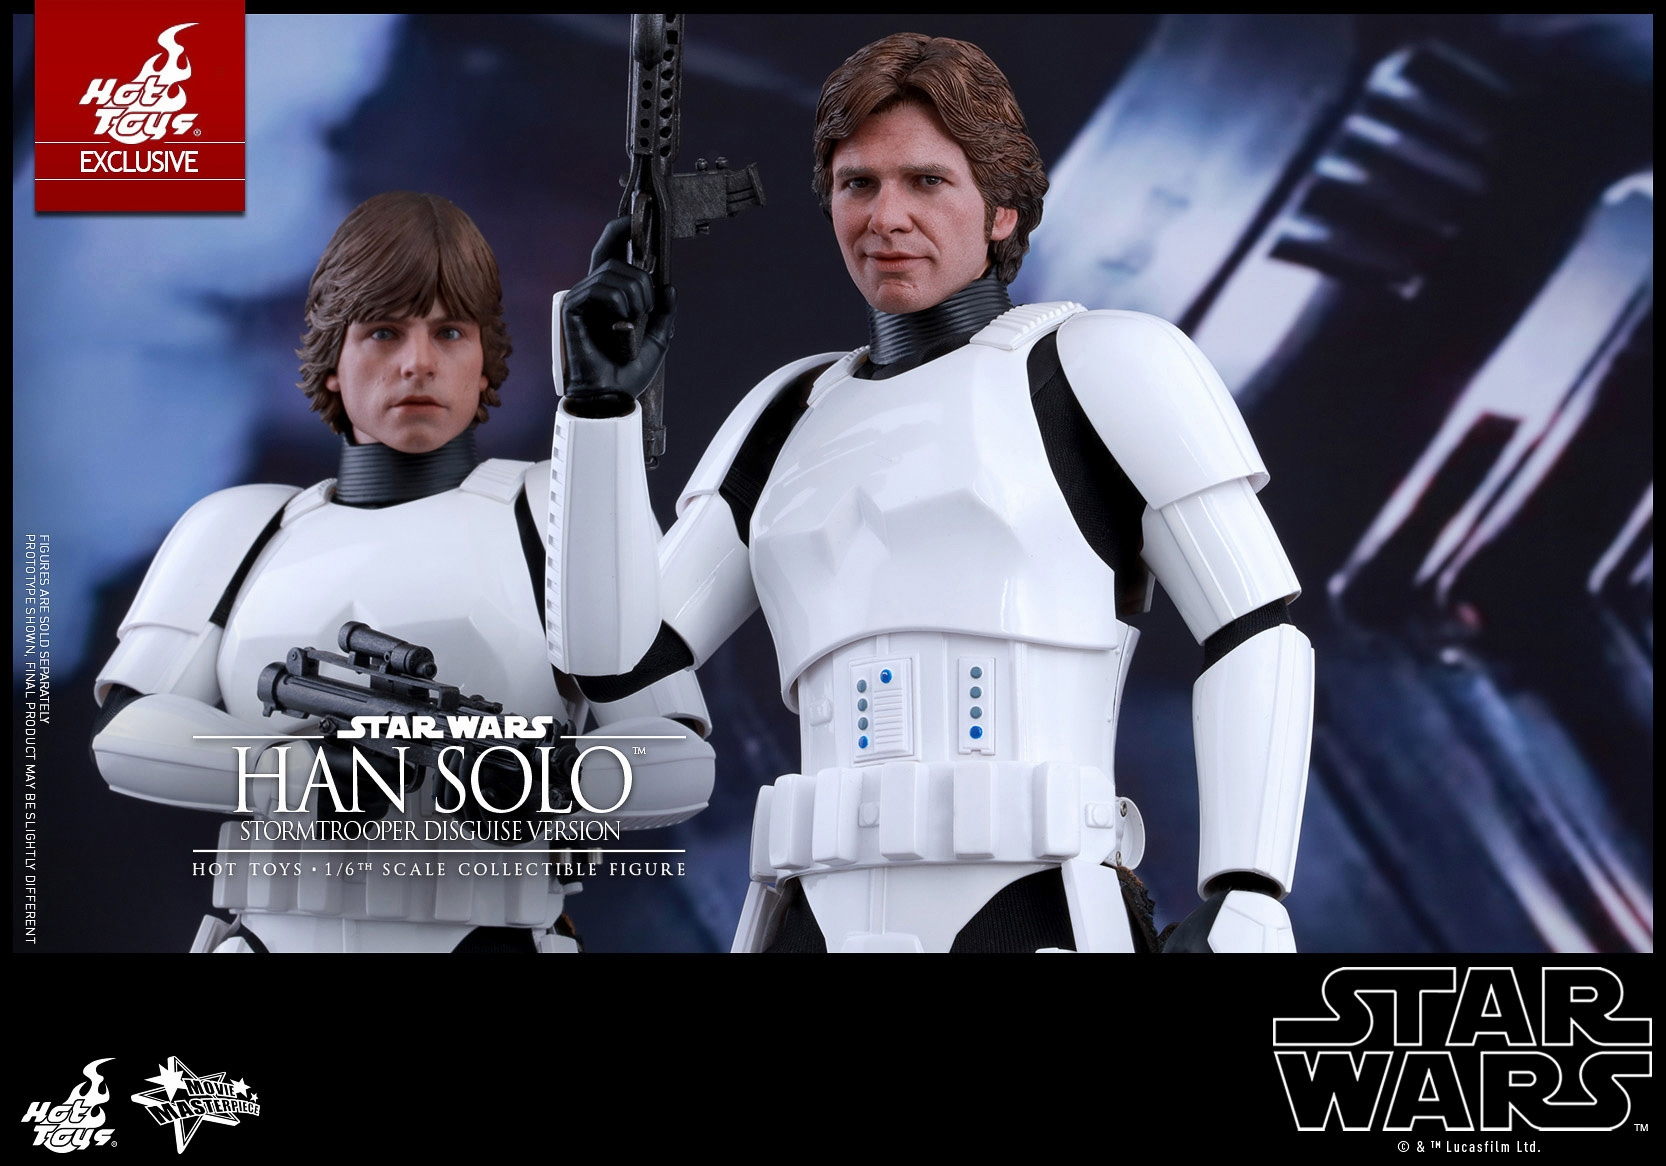 New Han Solo Stormtrooper Disguise 1 6th Scale Figure